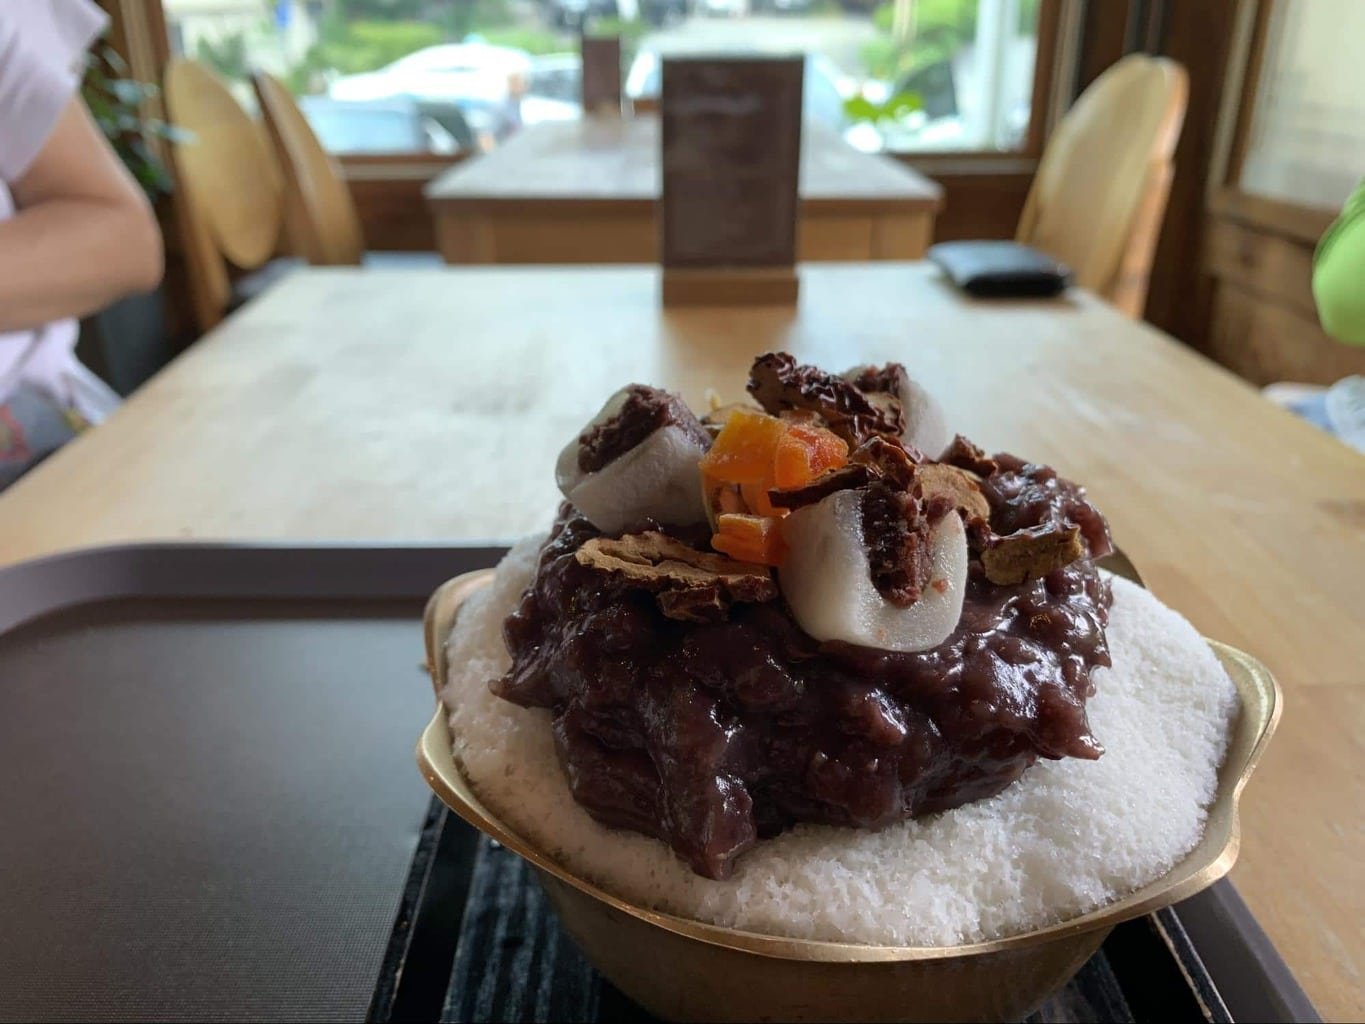 Delicious patbingsu or red bean shaved ice